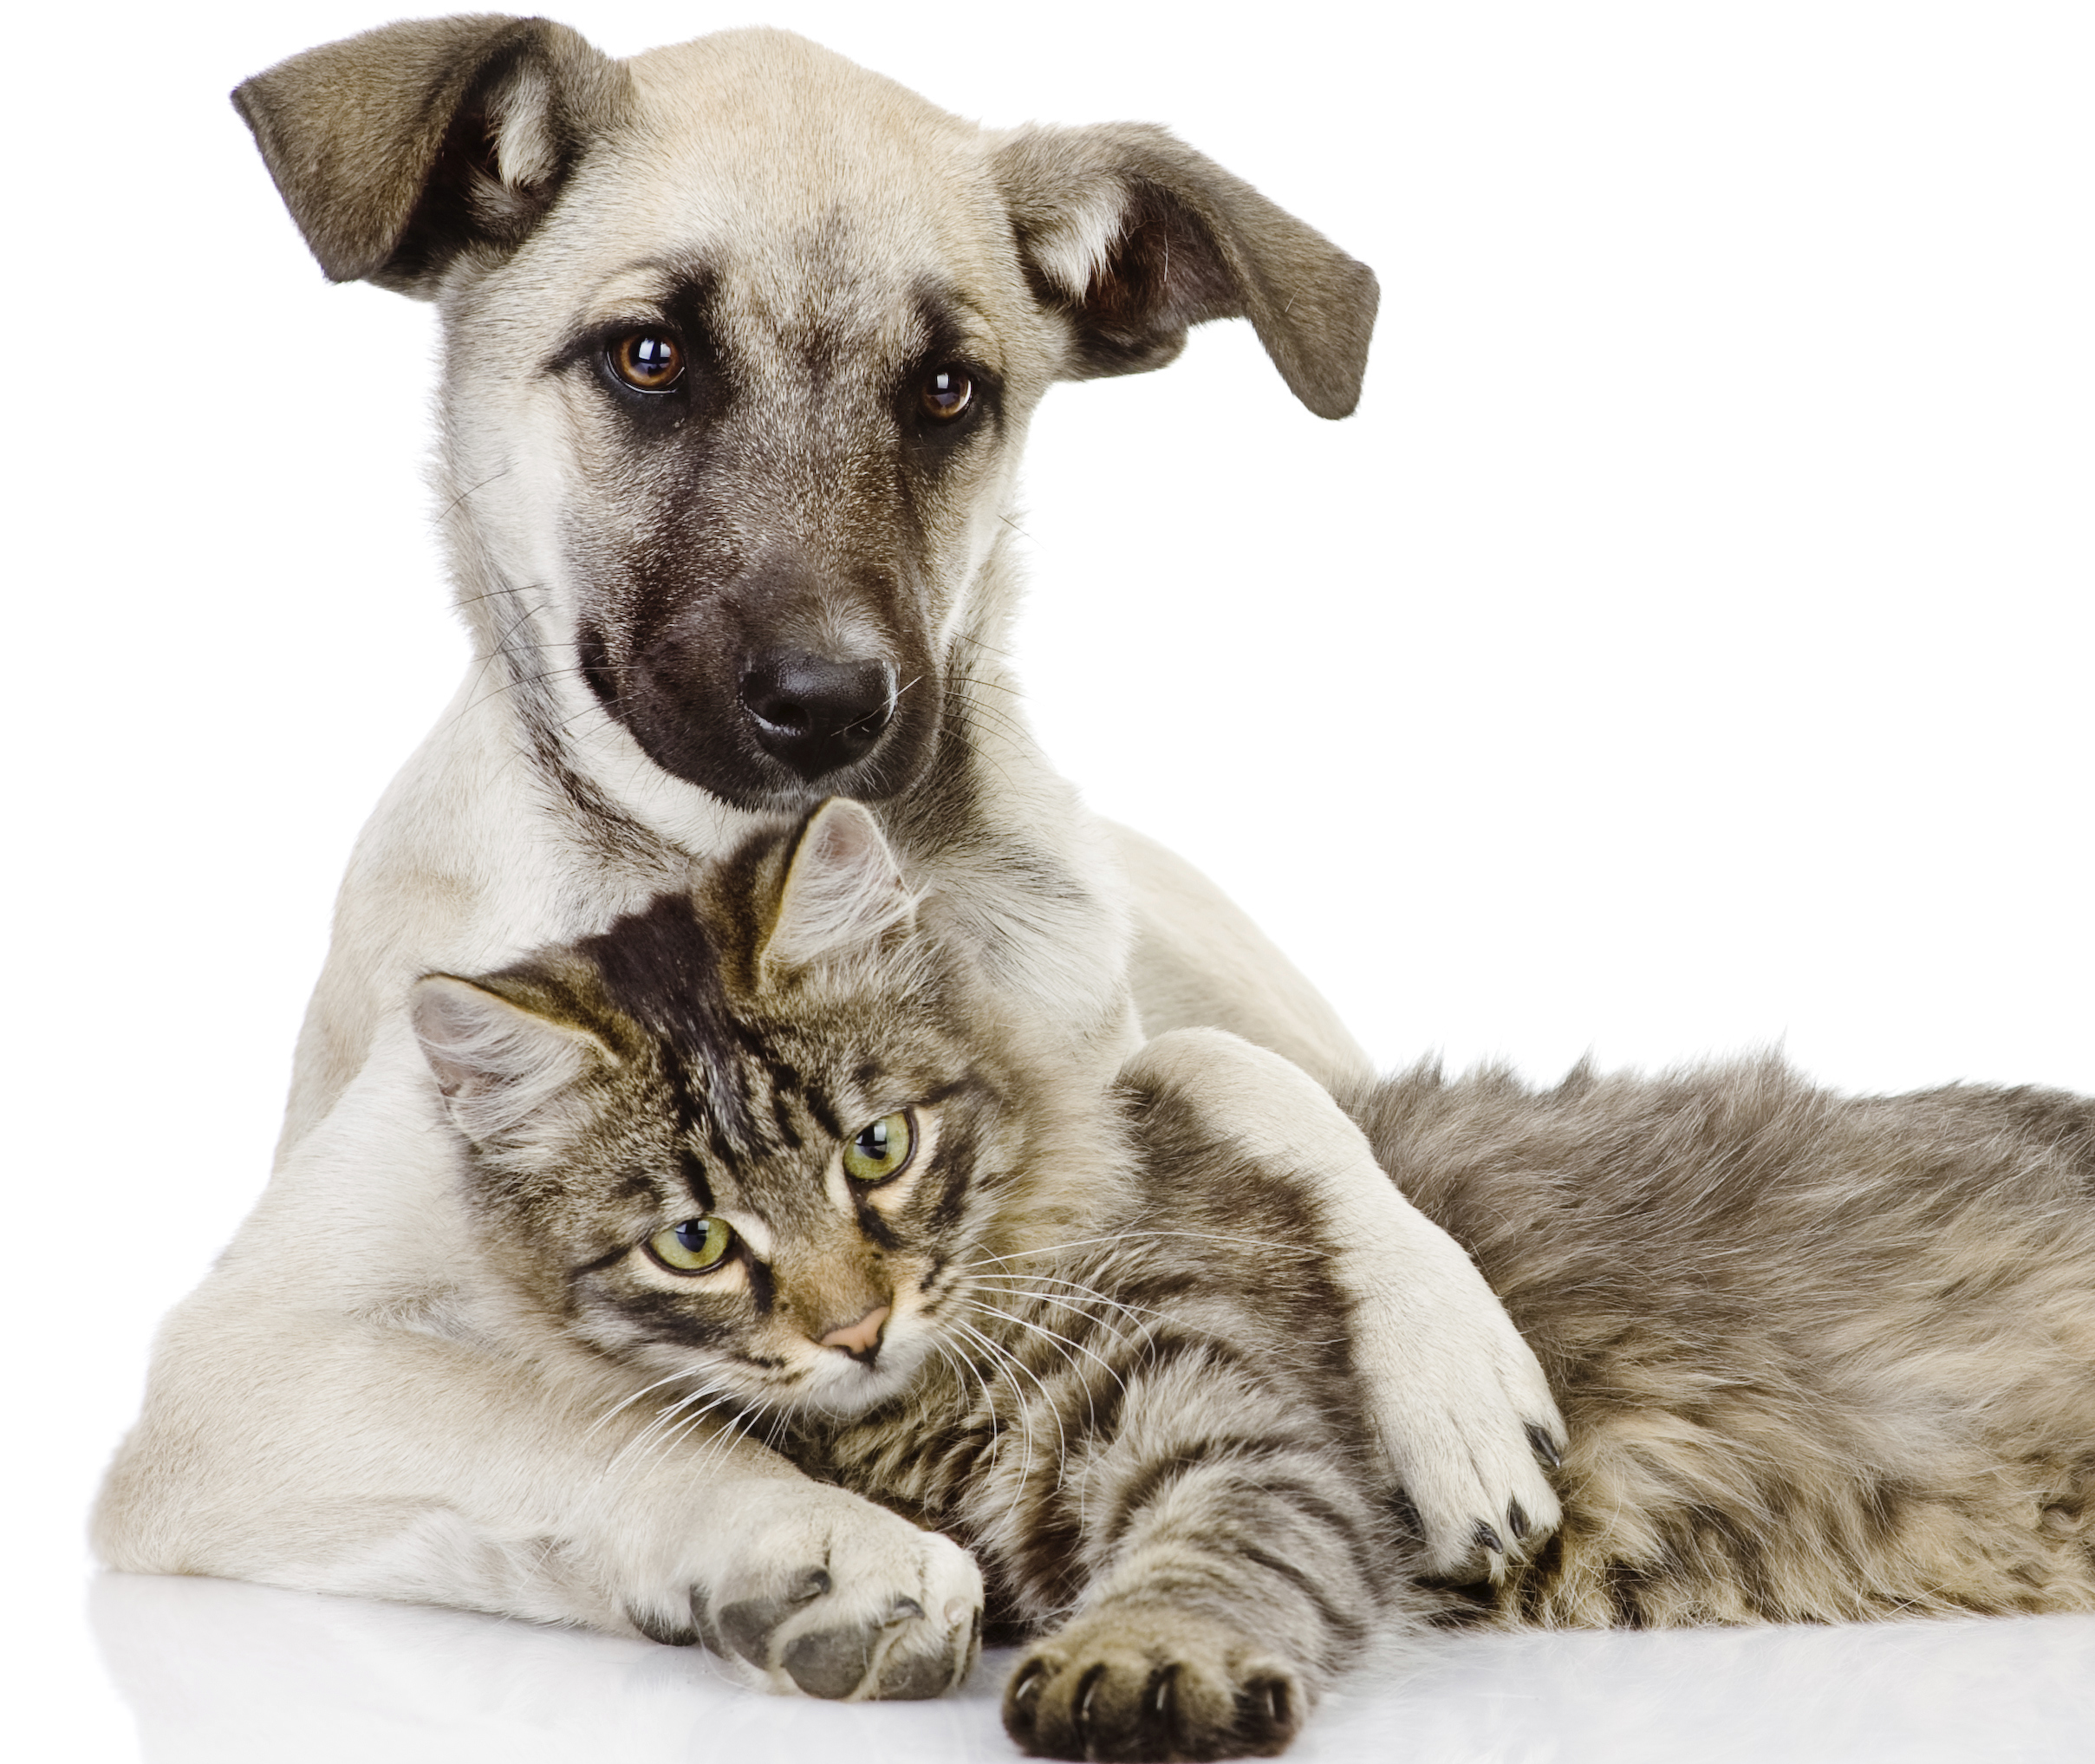 pet dog and cat cuddling